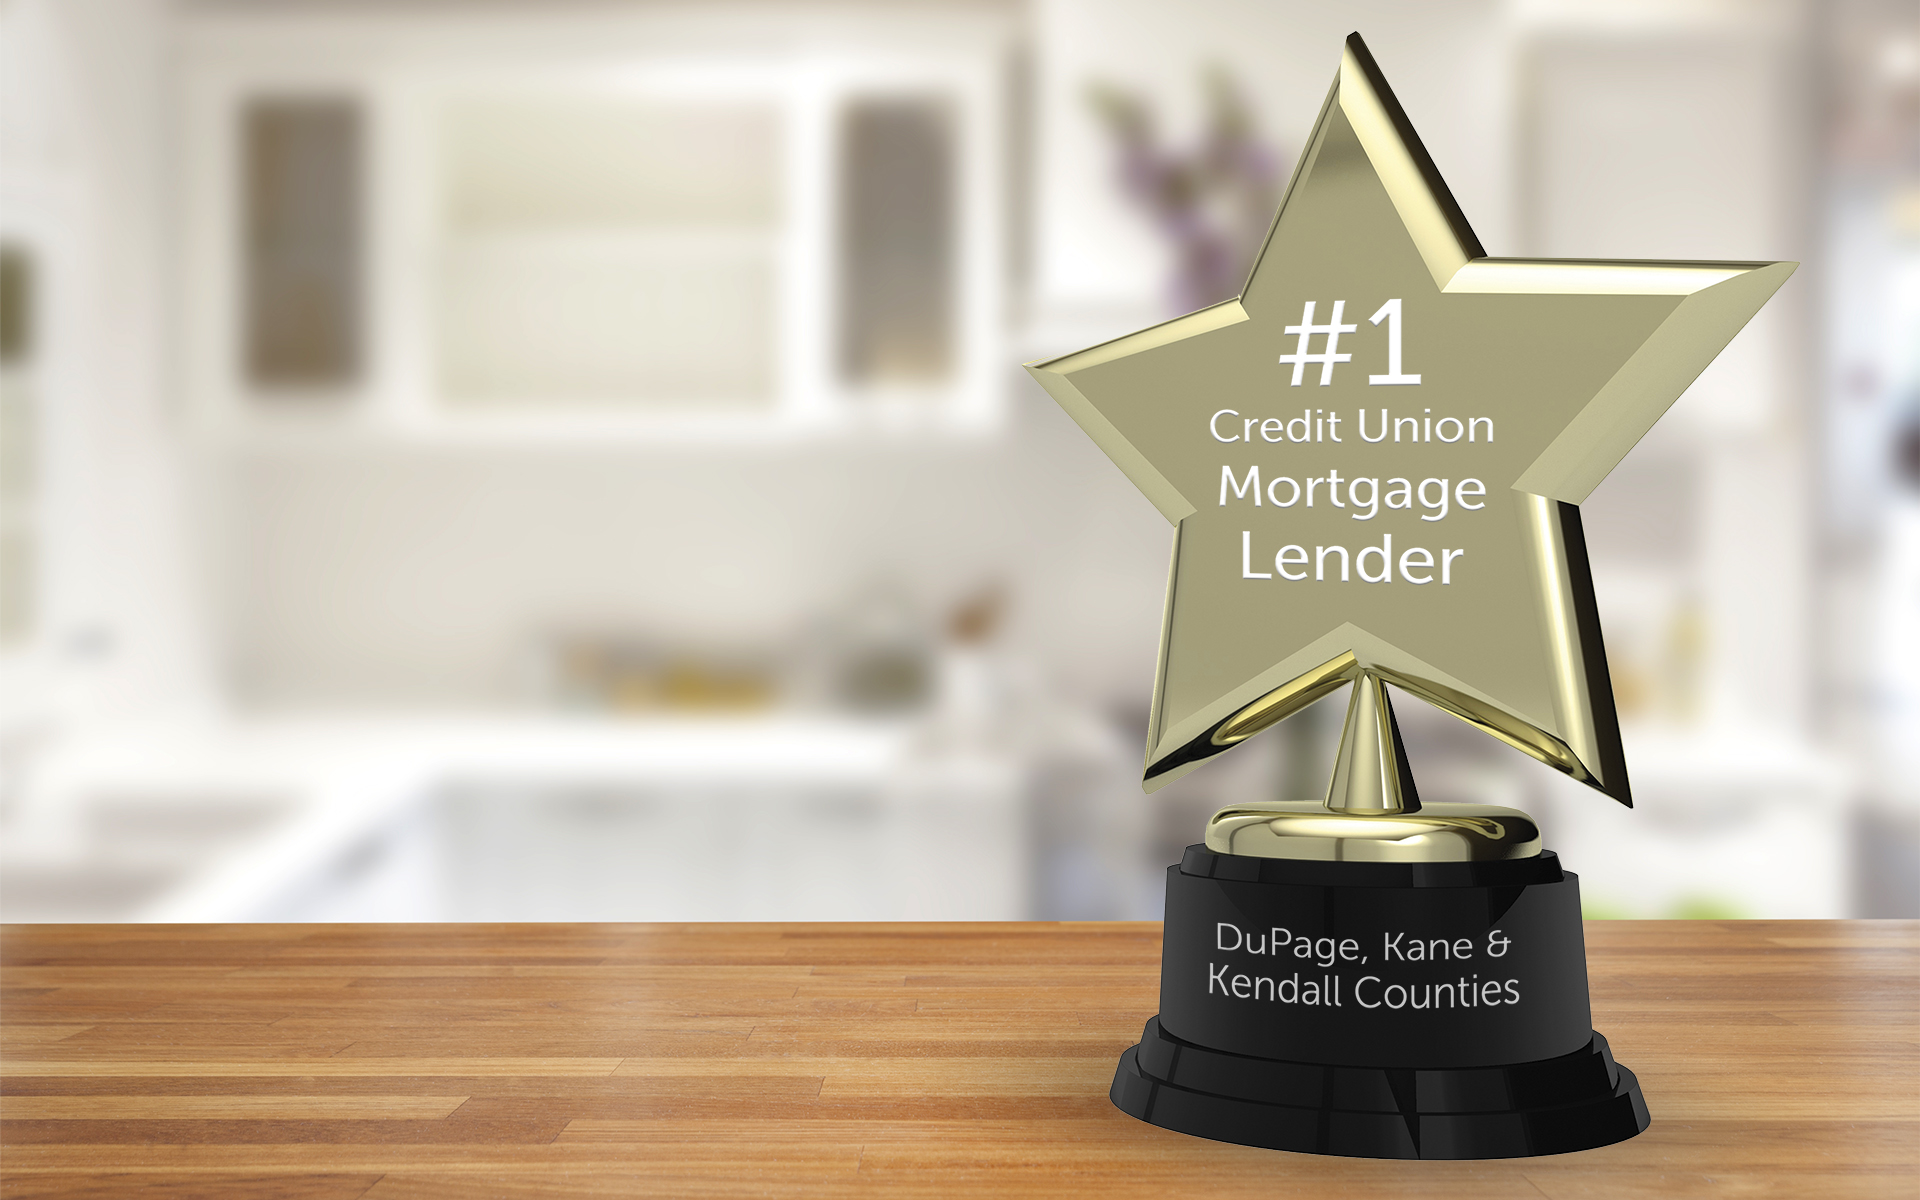 Number one mortgage lender award